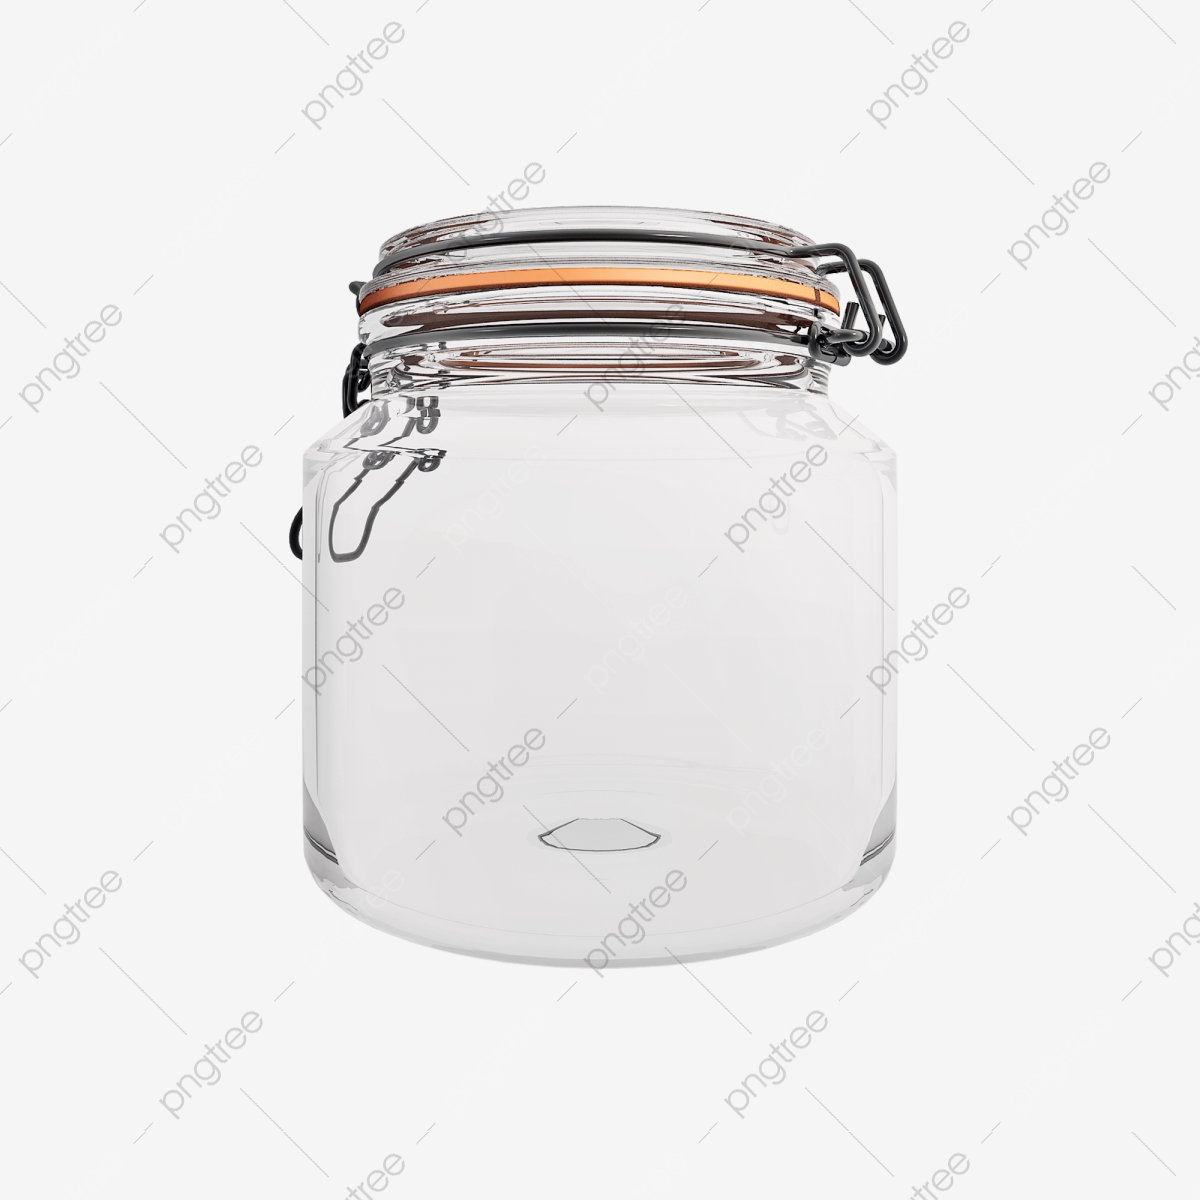 simulated sealed storage tank simulation glass jar seal up png transparent clipart image and psd file for free download pngtree